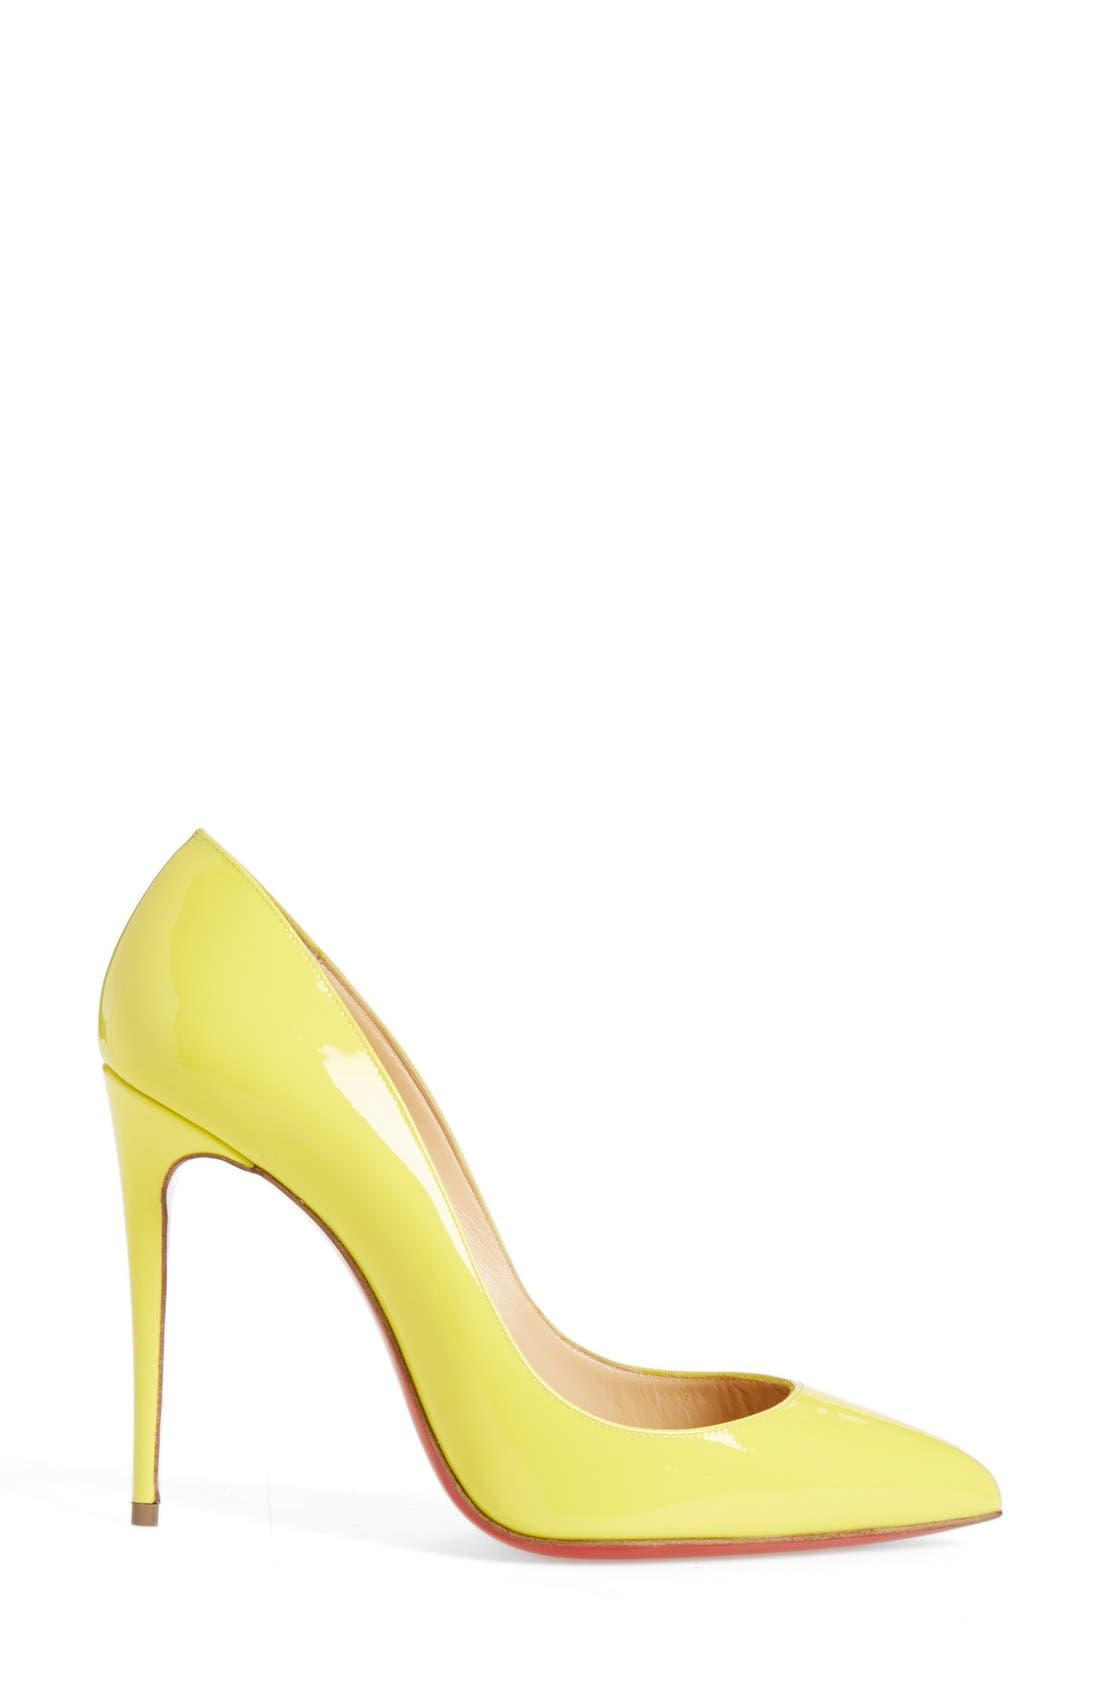 Alternate Image 3  - Christian Louboutin 'Pigalle Follies' Pointy Toe Pump